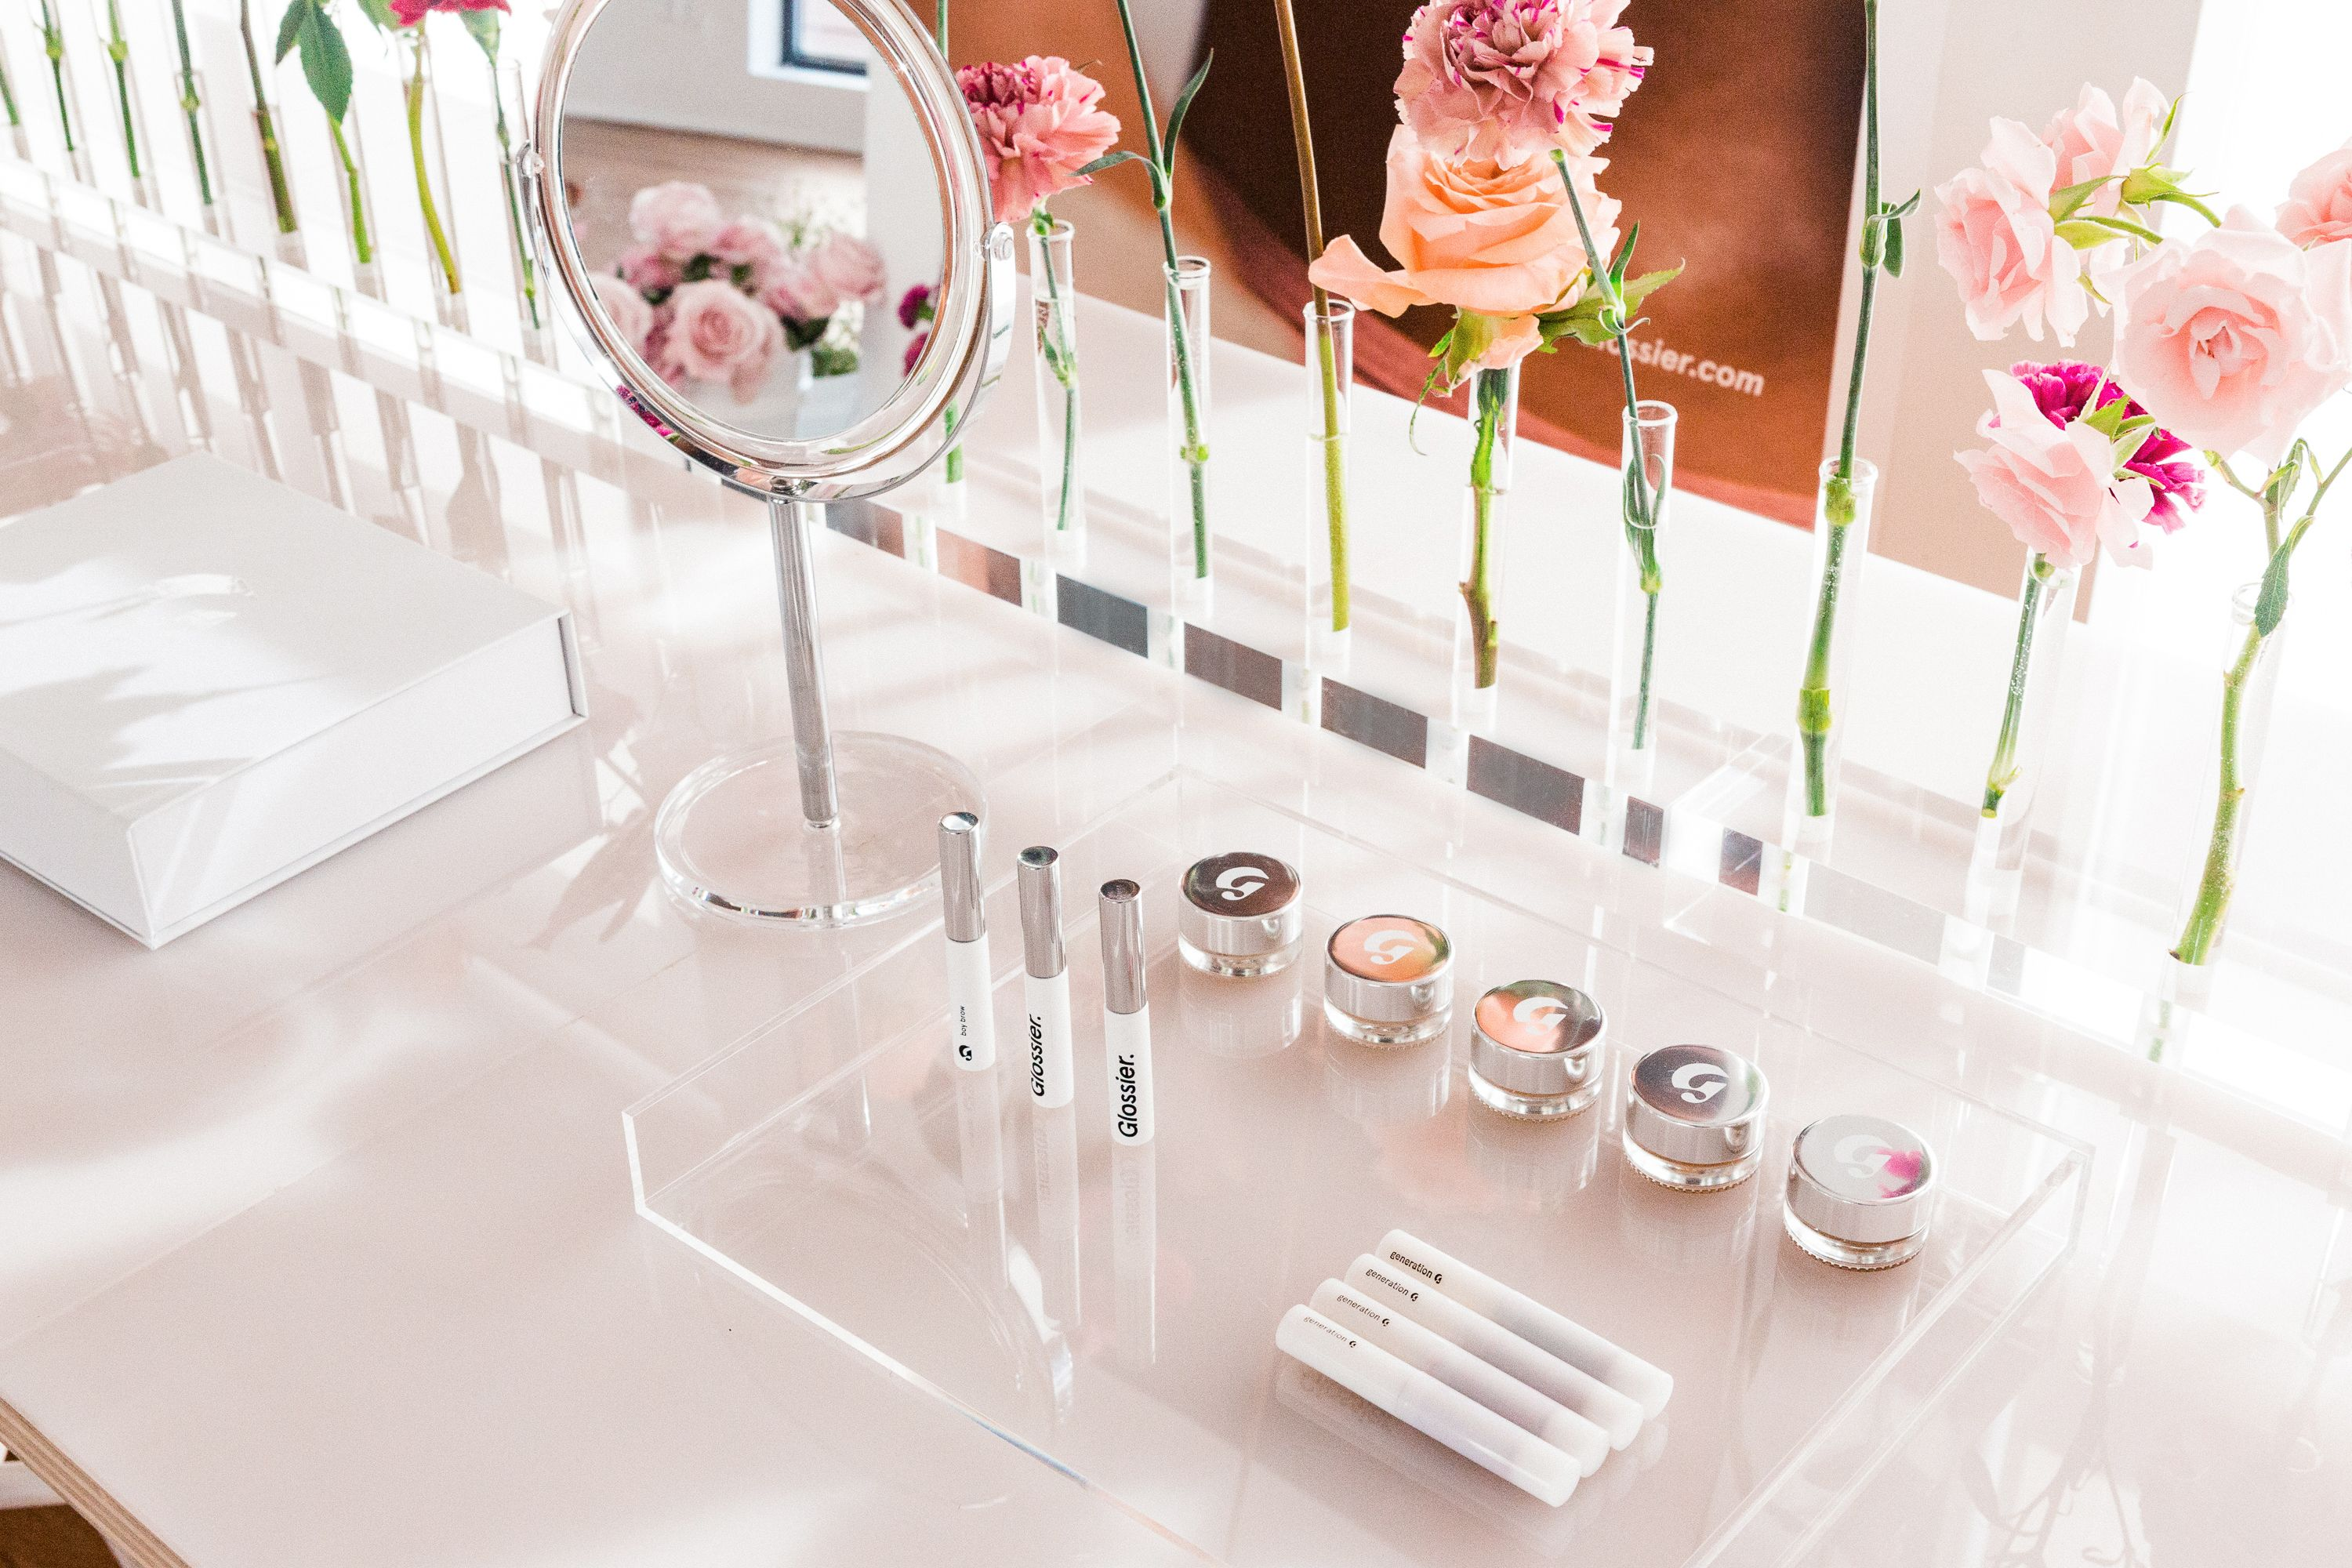 b5022f09236 Glossier s Instagrammable Showroom Is Open to the Public for Phase 2 ...